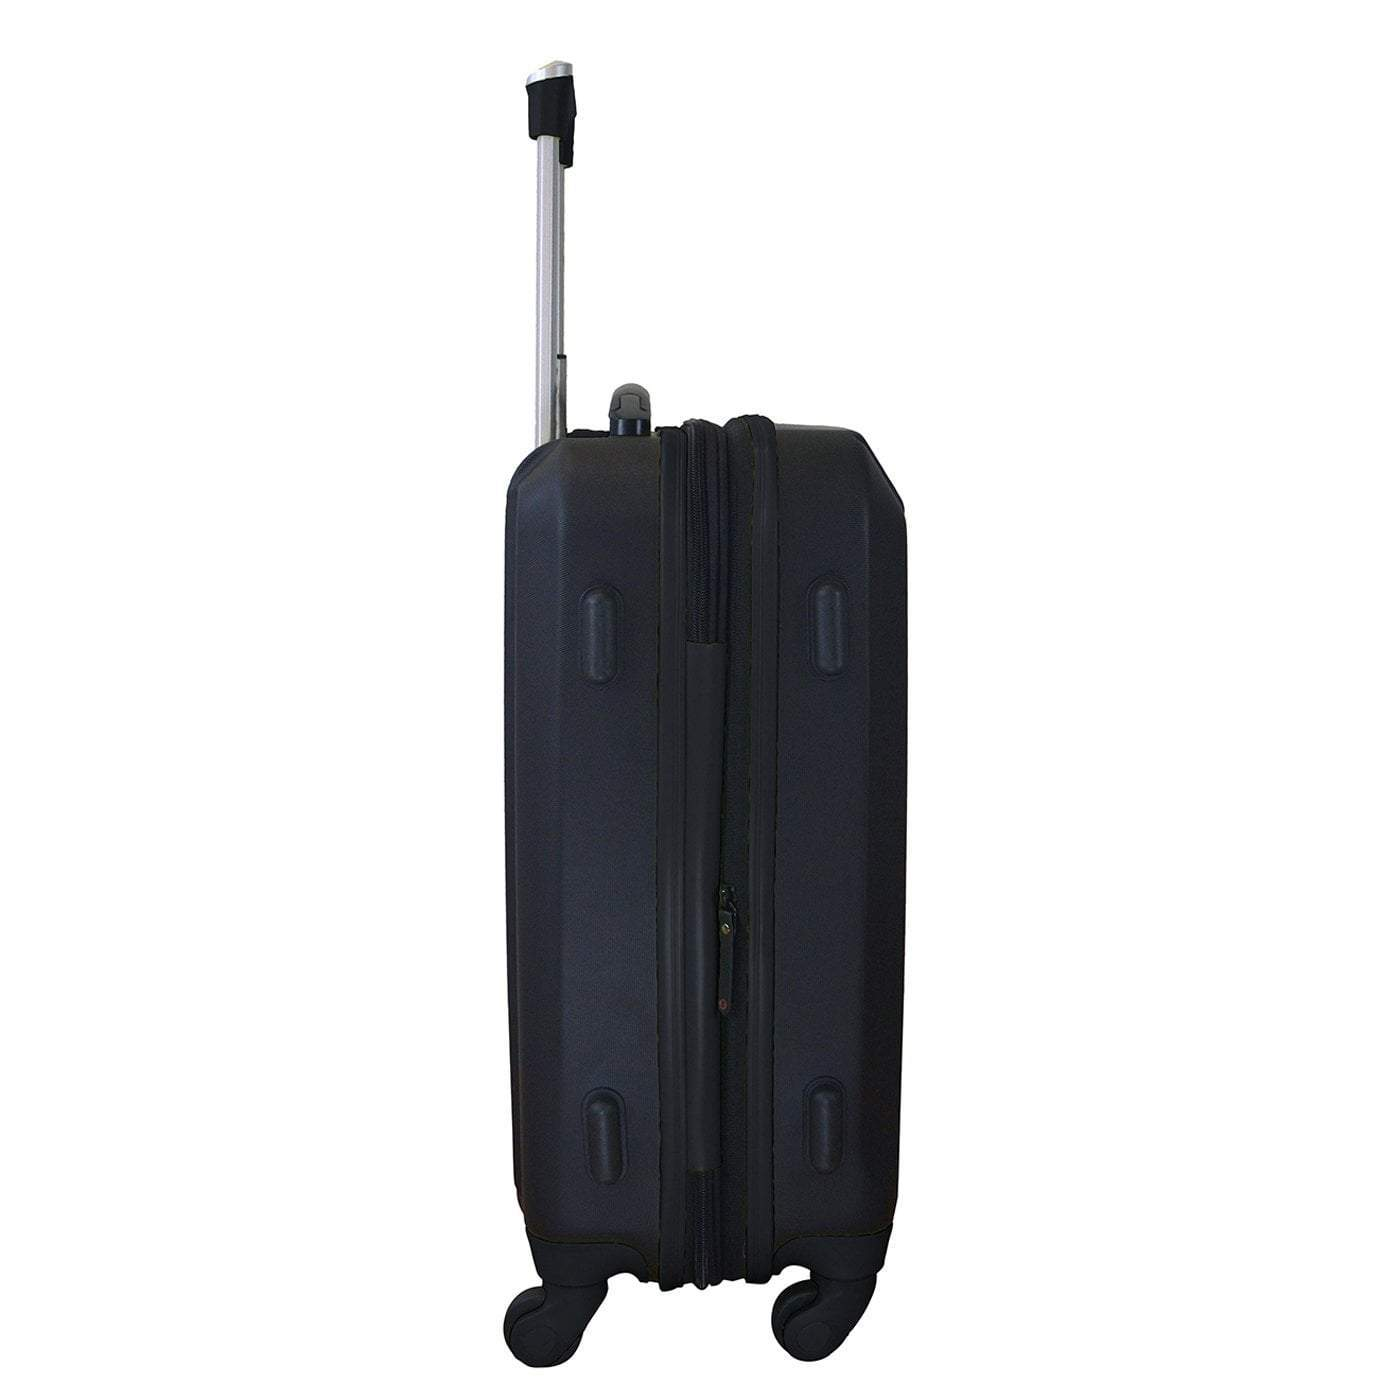 "Mojo-Denco Luggage Brooklyn Nets Mojo 21"" Hardcase Two-tone Luggage Carry-on Spinner - Black"